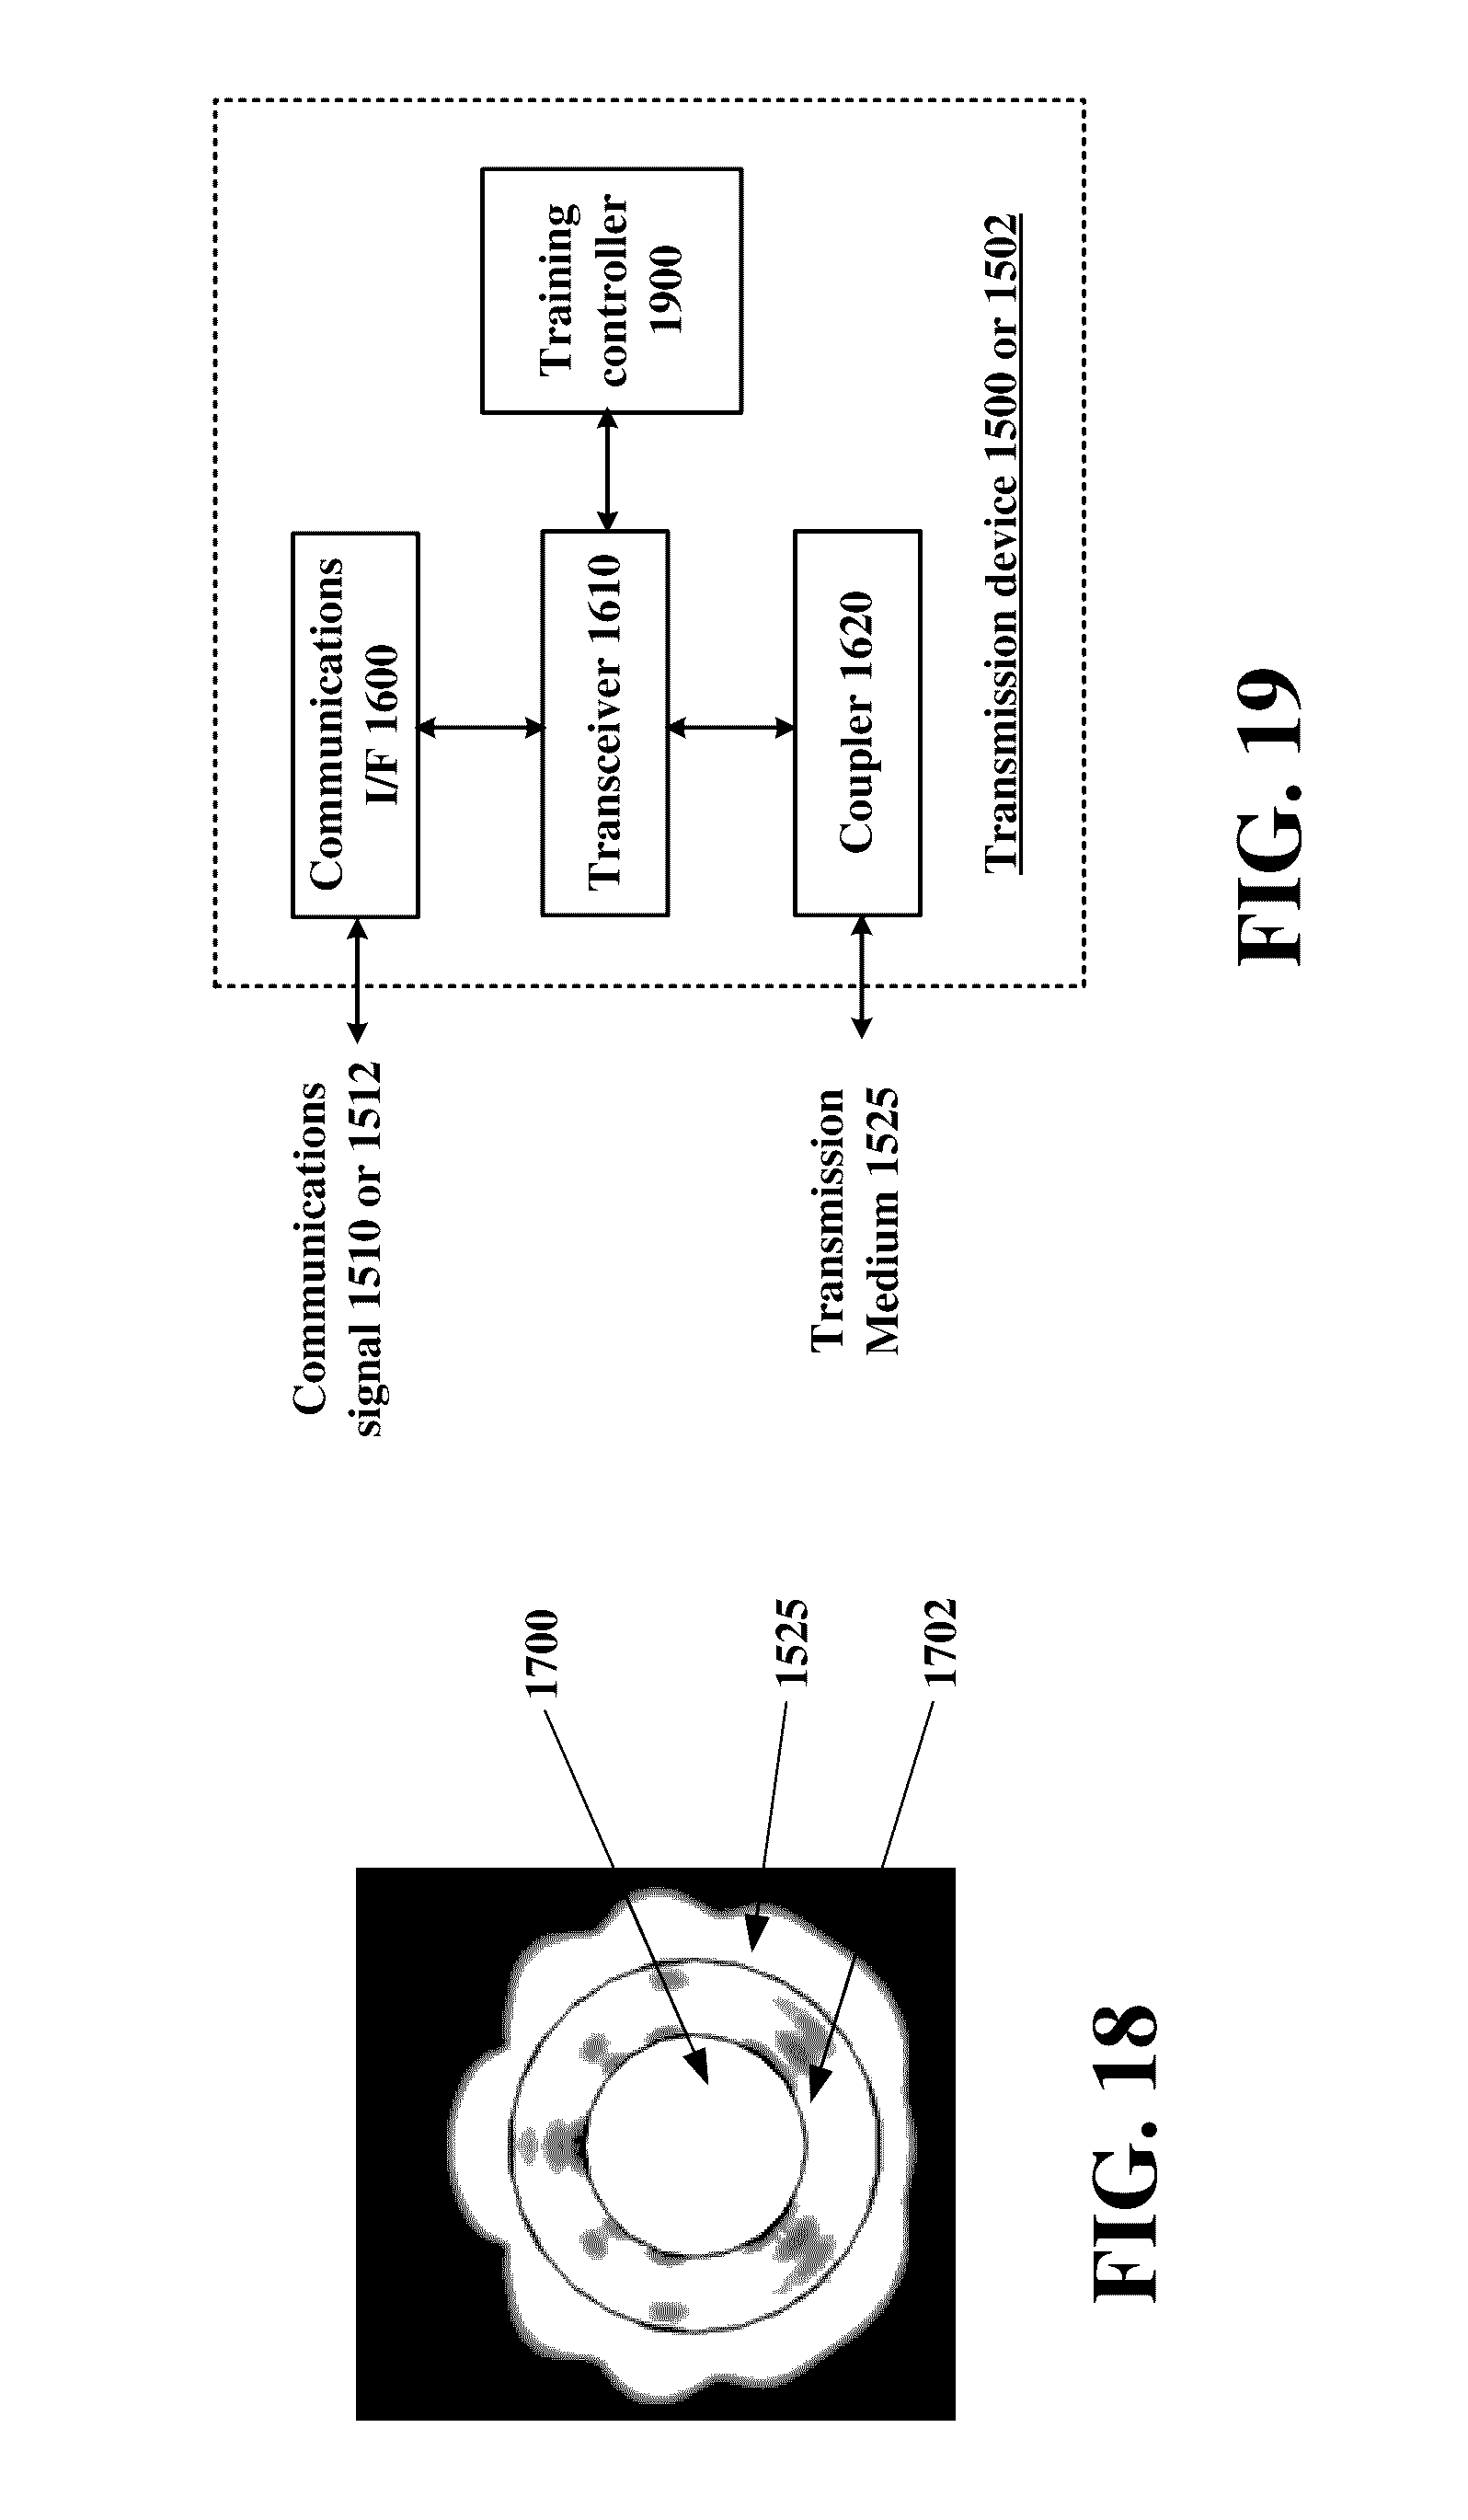 us9531427b2 transmission device with mode division multiplexing rh patents google com